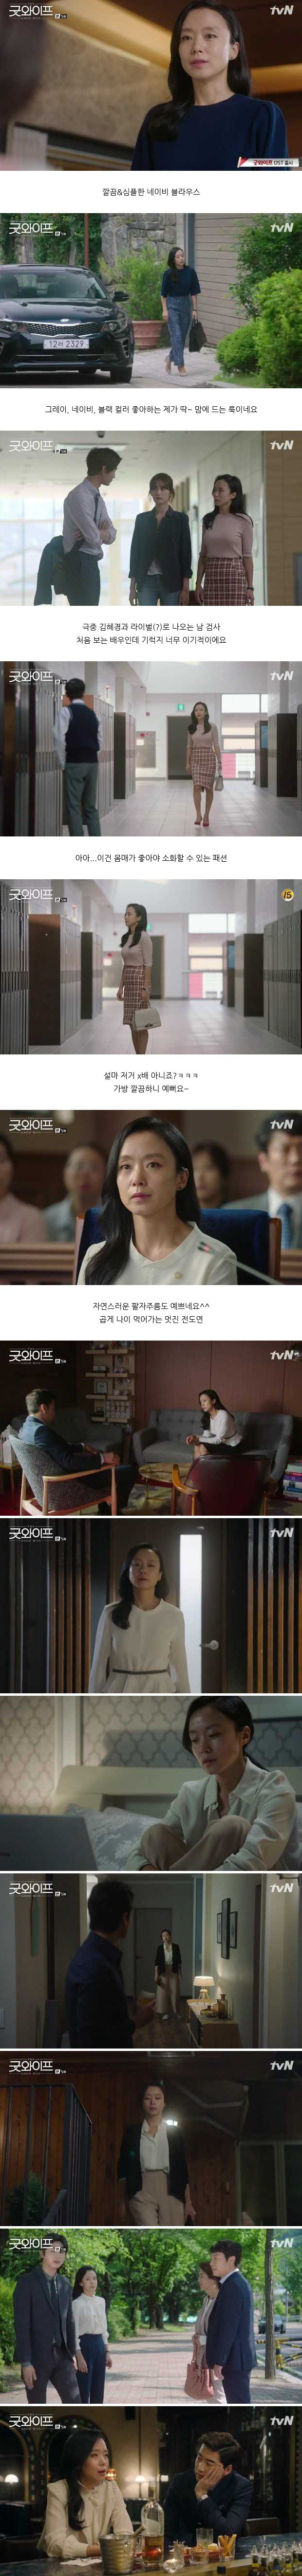 Added episodes 5 and 6 captures for the Korean drama 'The Good Wife'.